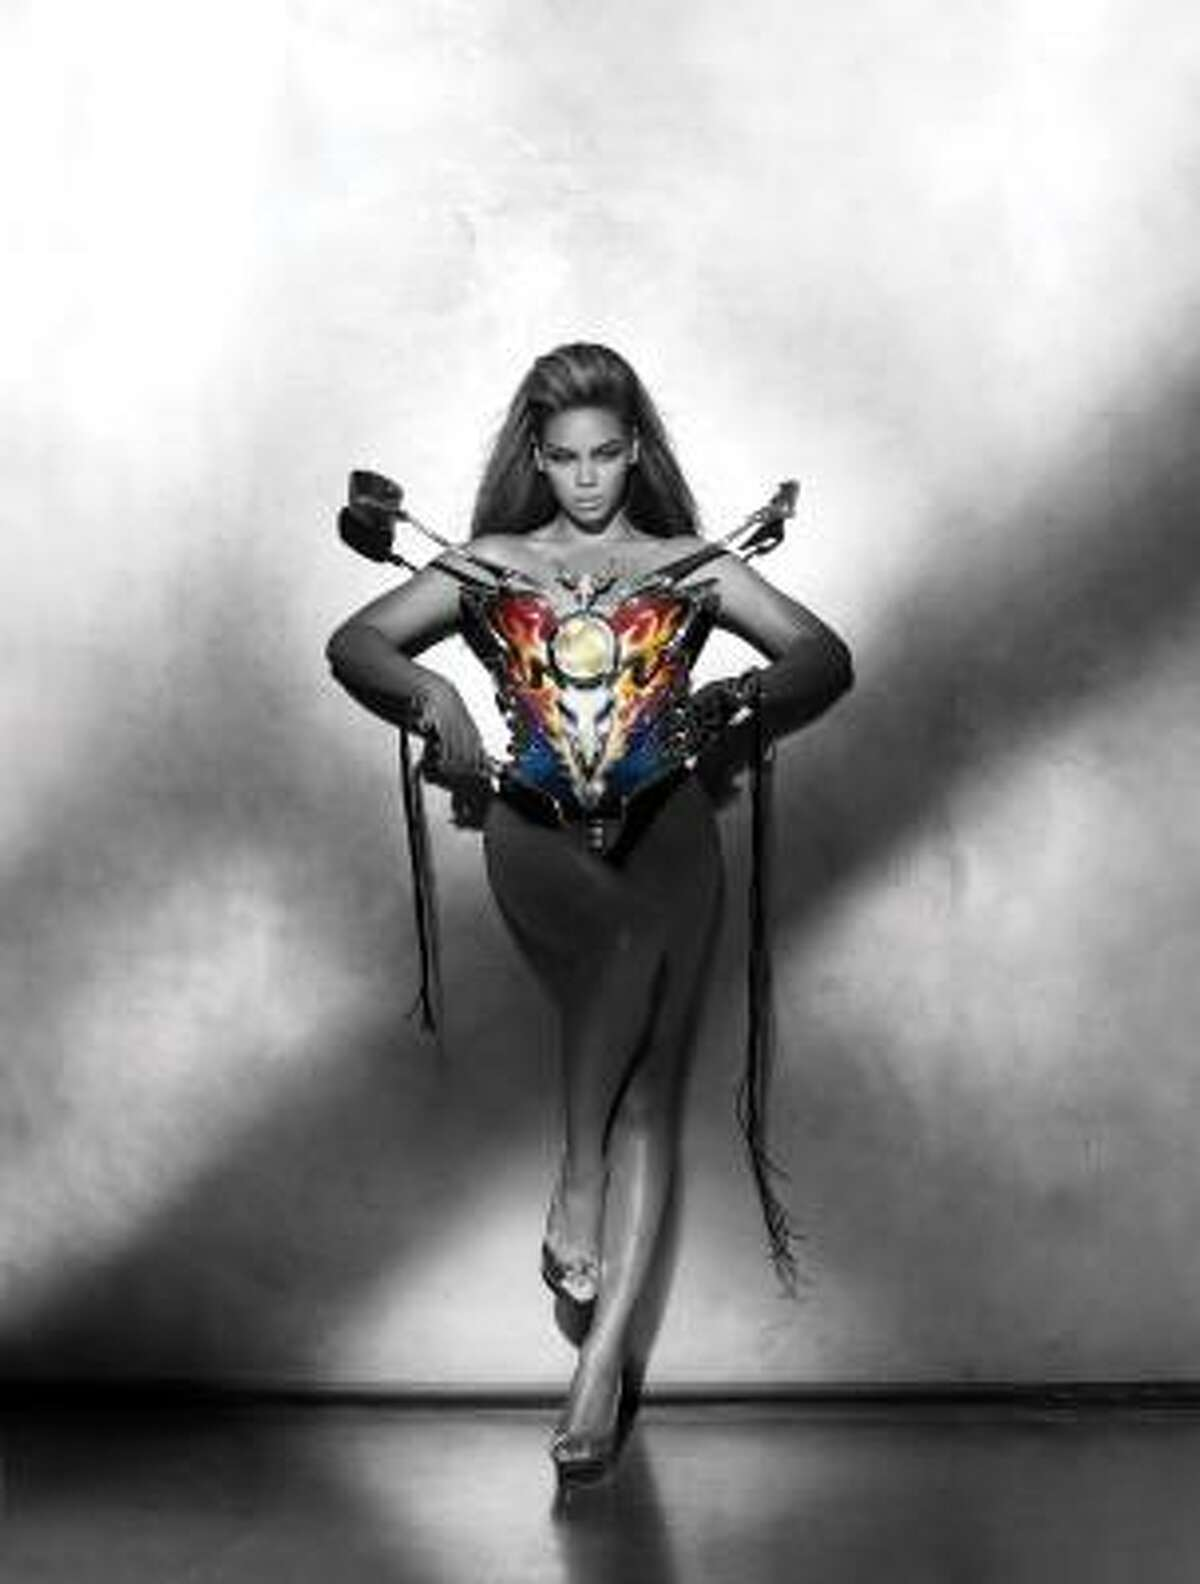 Beyonce dons a motorcycle bustier designed by Thierry Mugler for a photo on her album I AM ... Sasha Fierce.